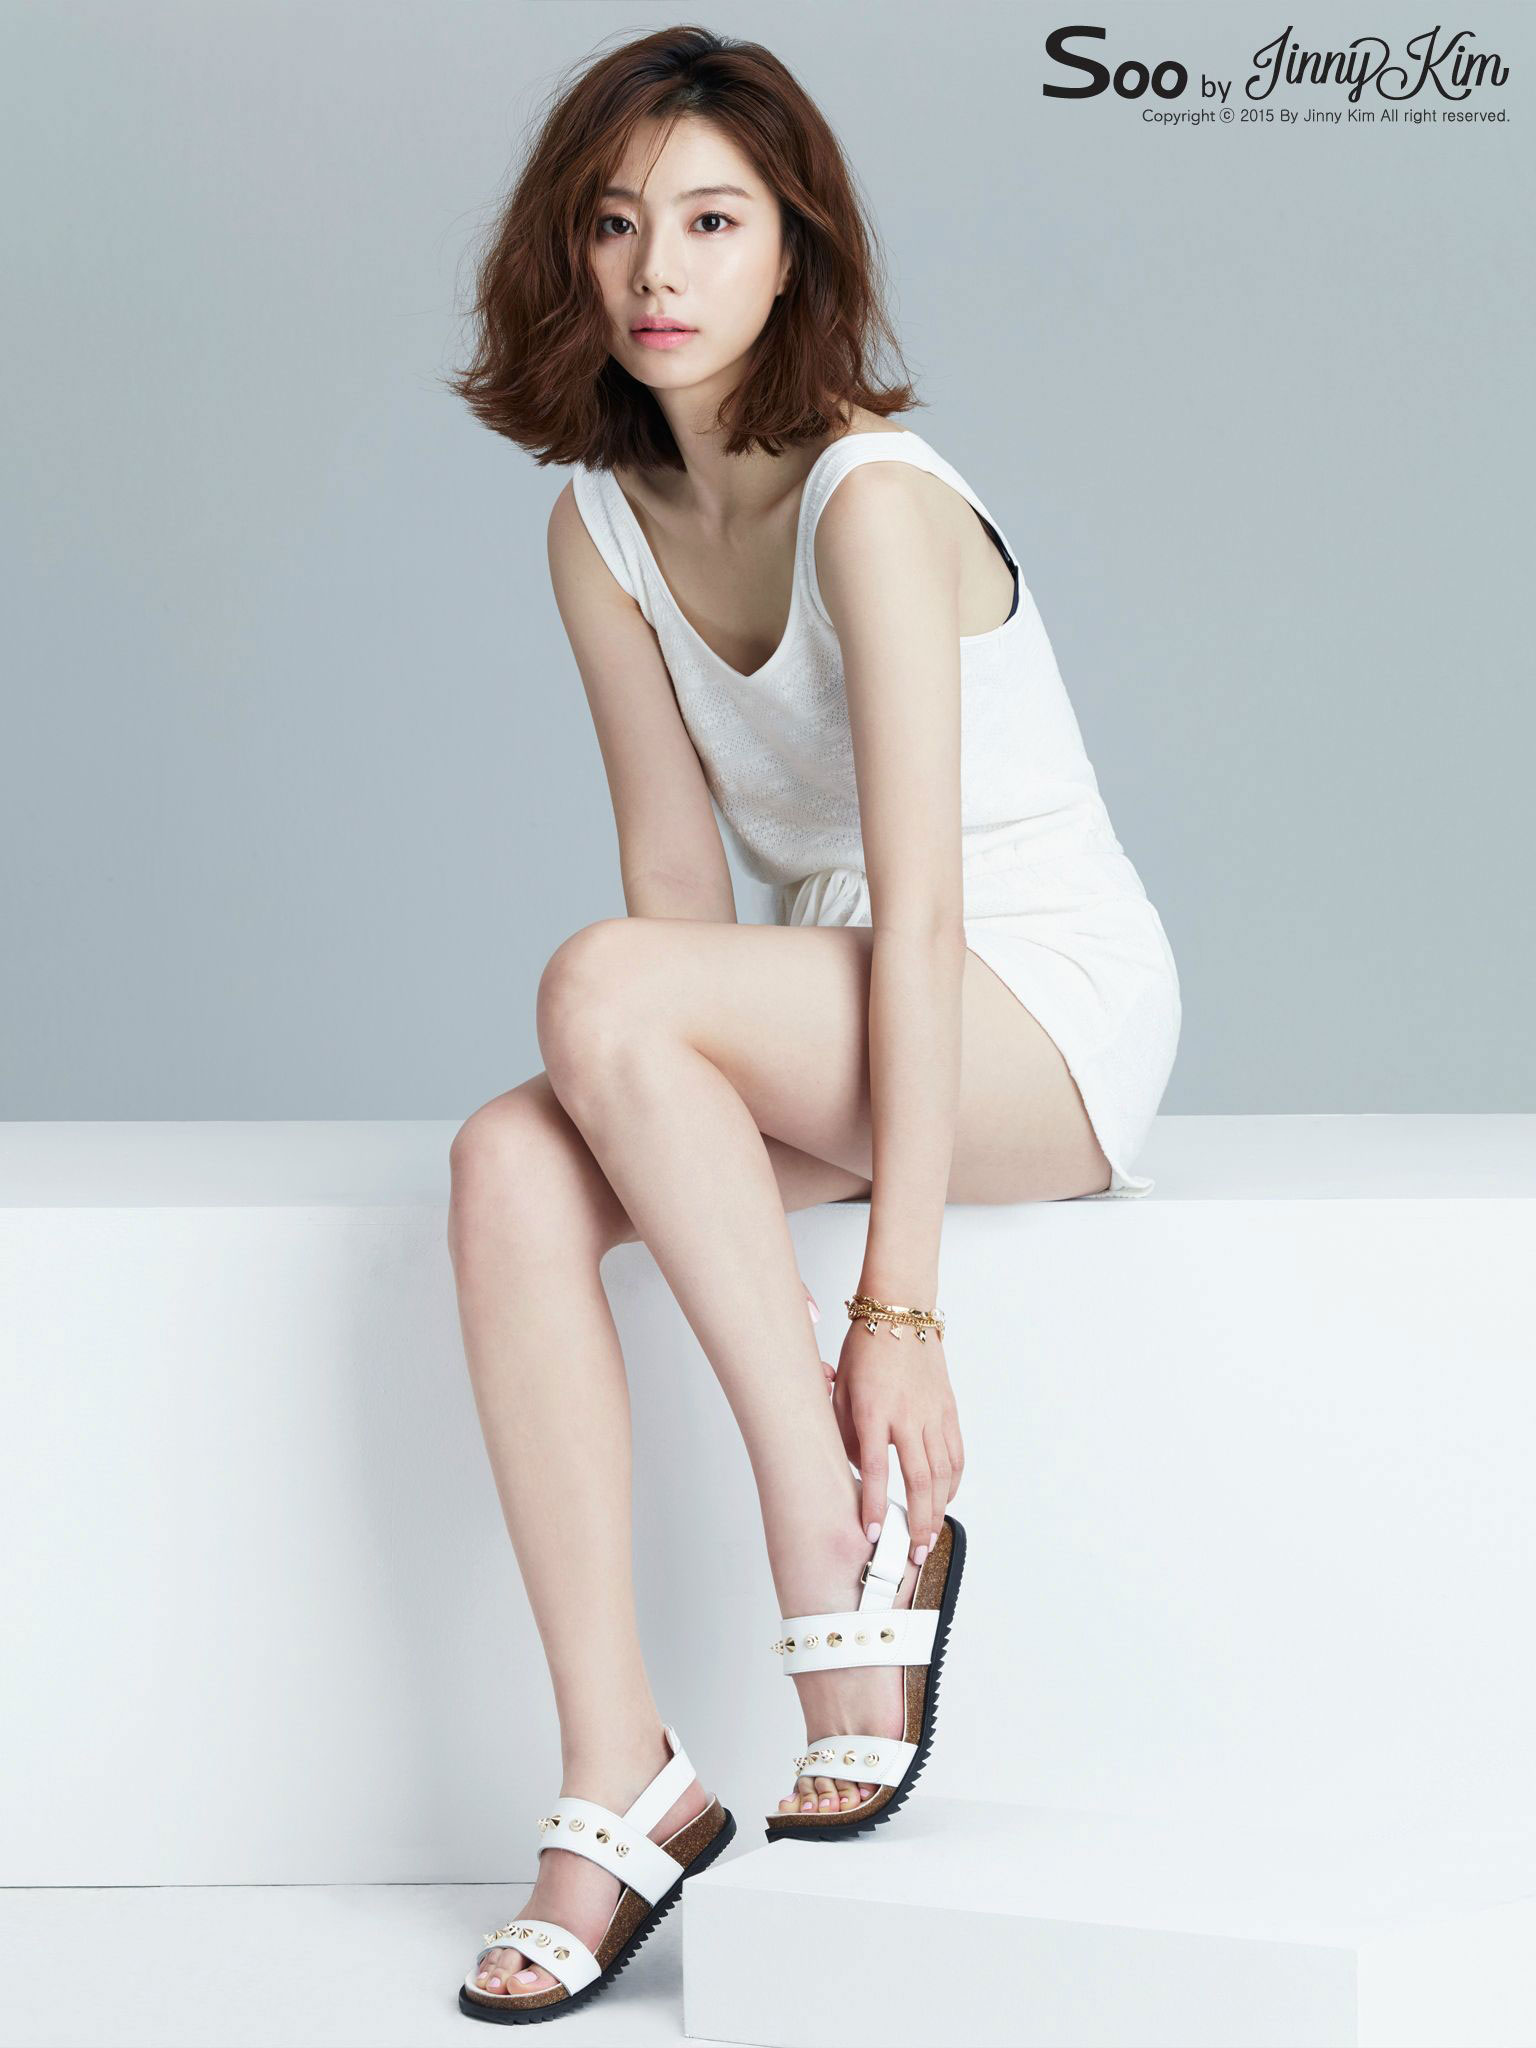 Soo by Jinny Kim designer shoe label